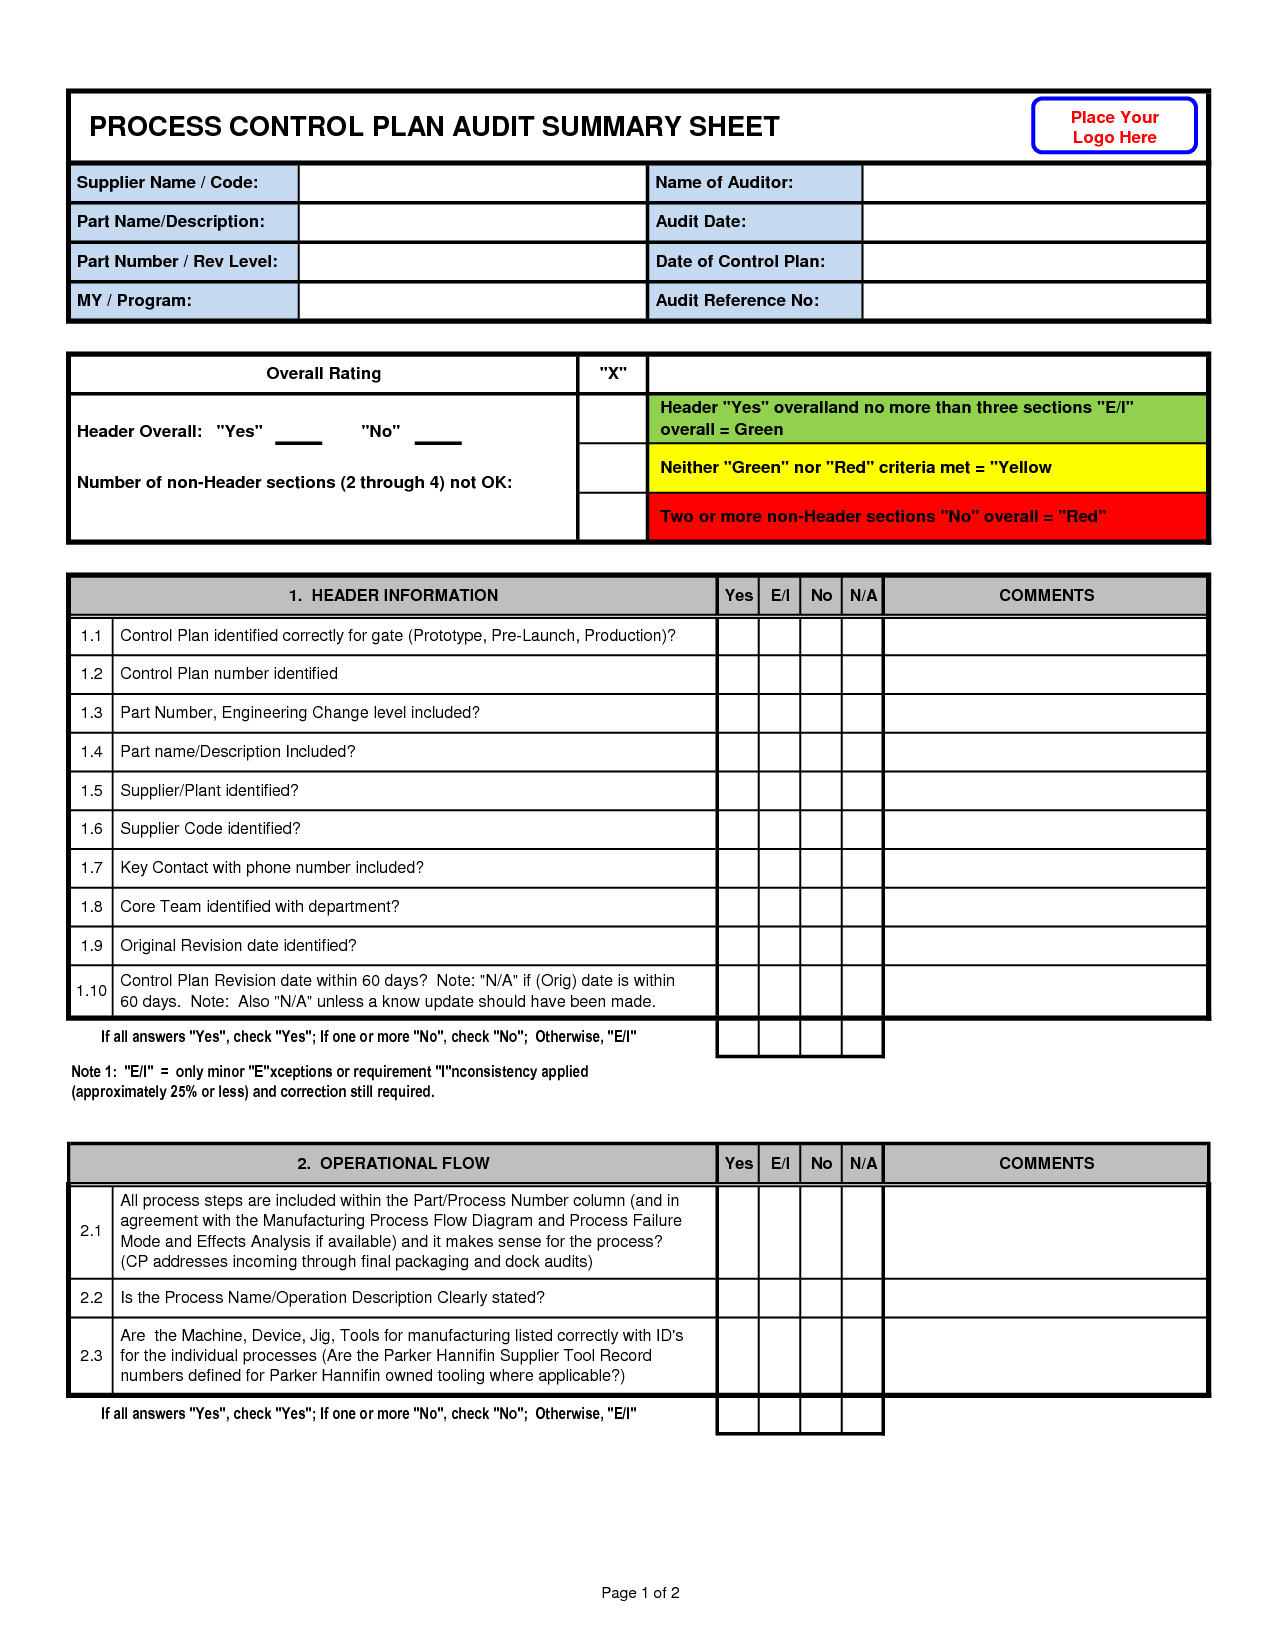 Awesome Process Control Plan Audit Summary Sheet Template With Logo Place And Rating Also Header